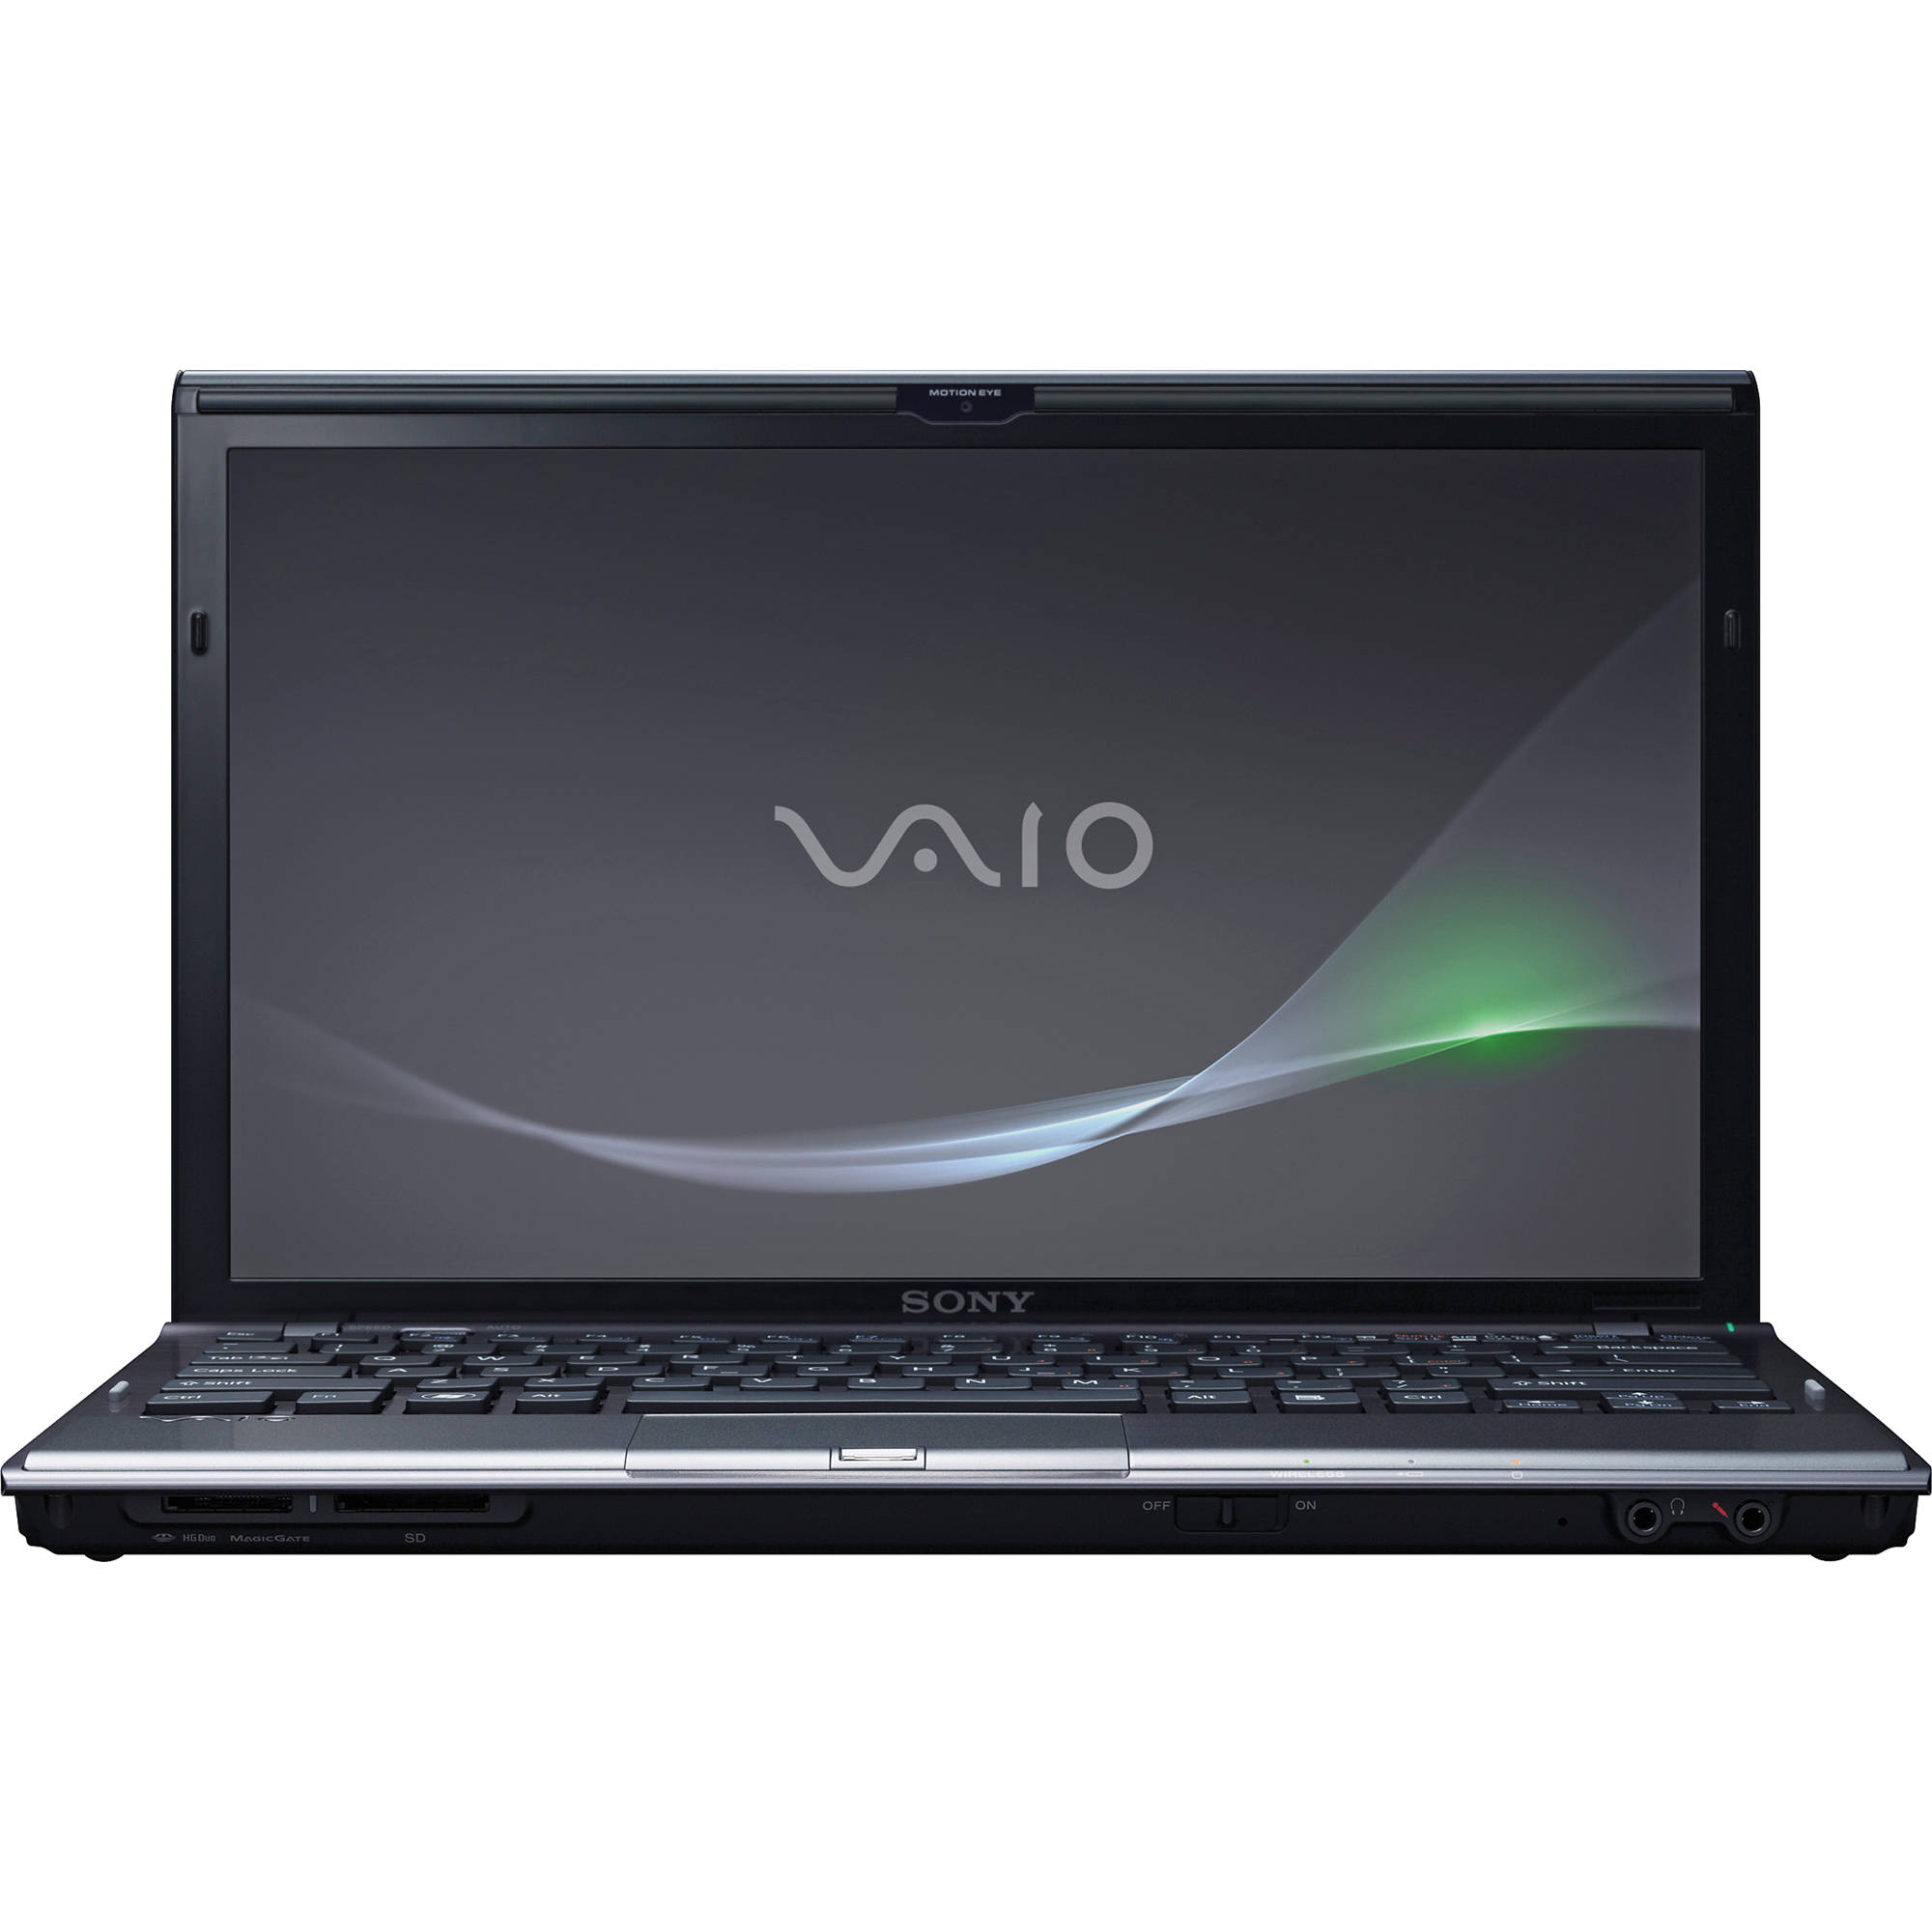 Sony Vaio VPCZ127GX/B Drivers for Windows 10